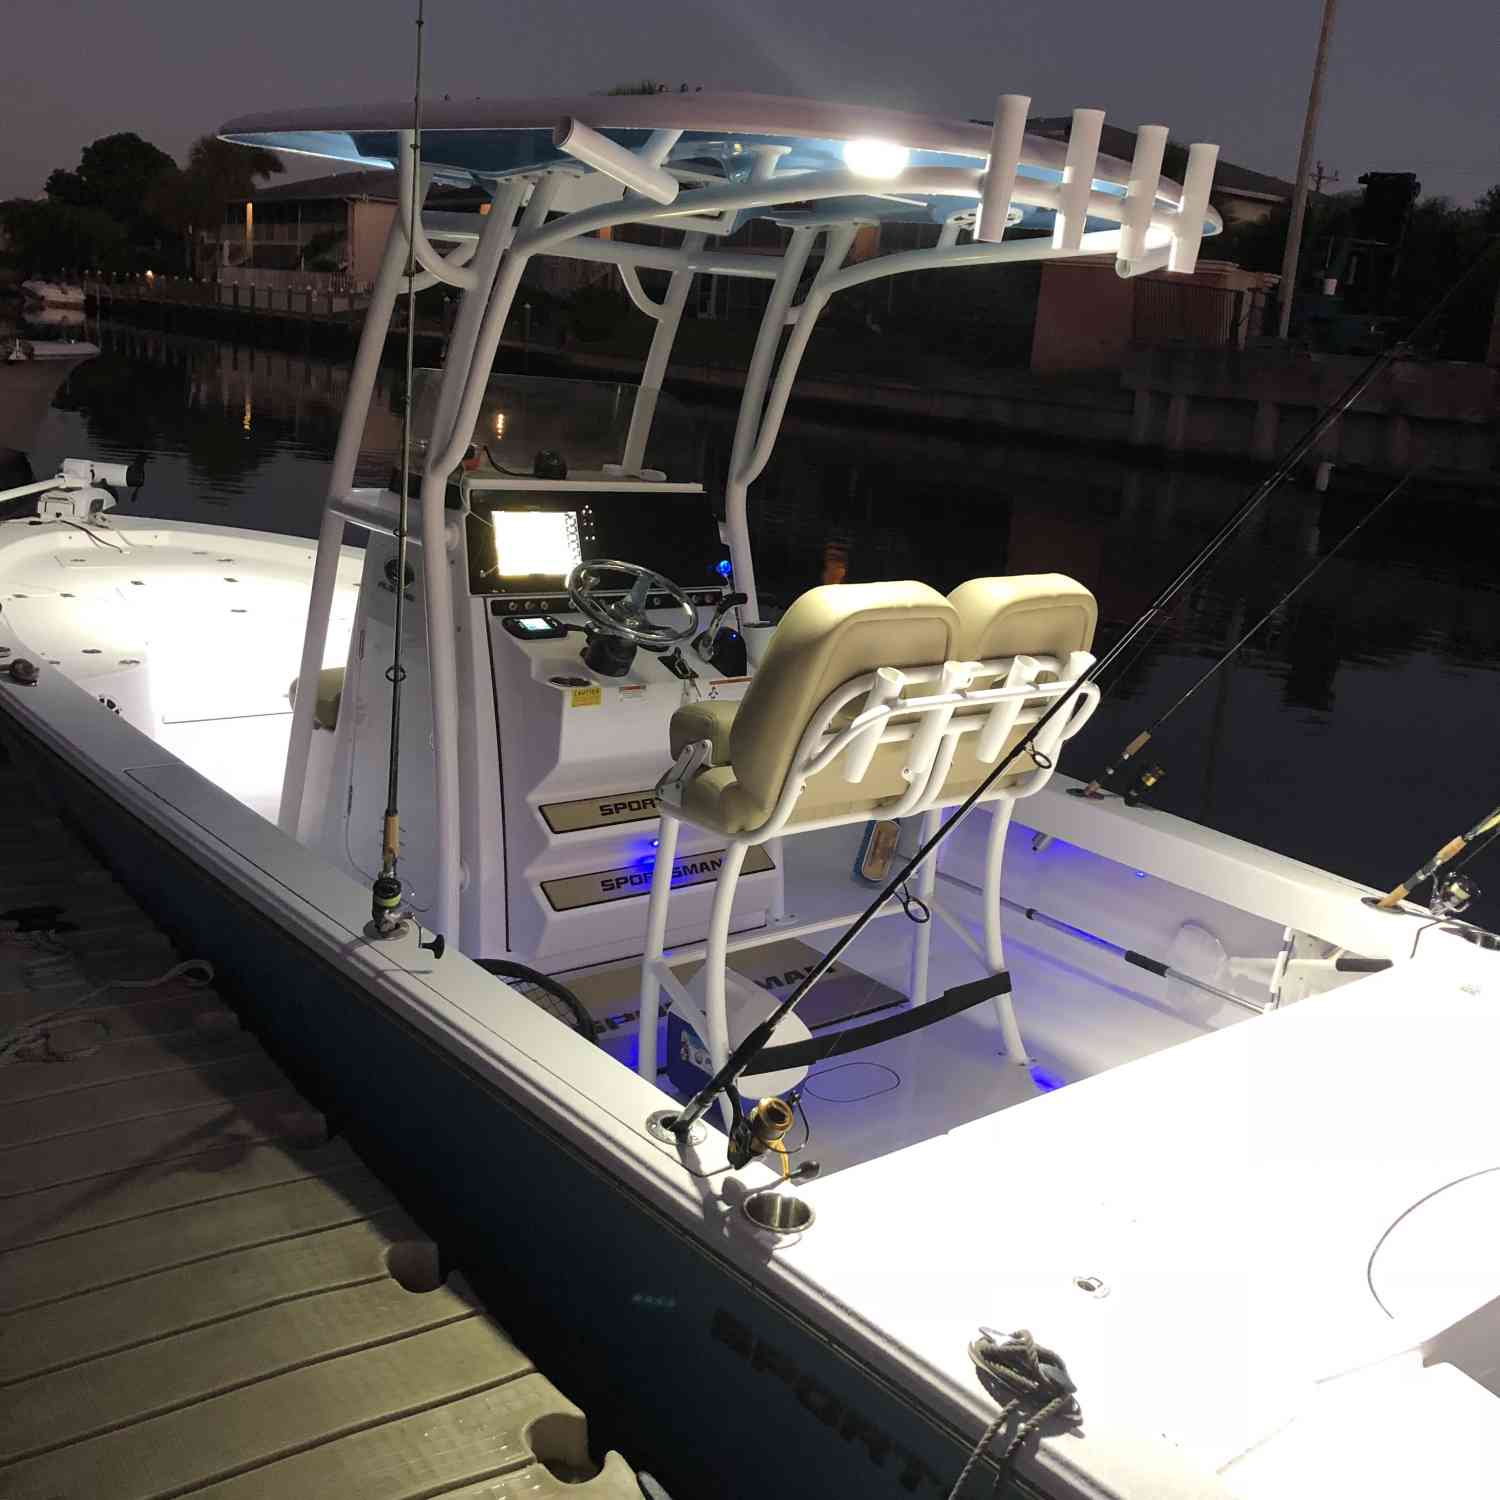 Title: It's lit - On board their Sportsman Masters 247 Bay Boat - Location: Fort Myers Florida. Participating in the Photo Contest #SportsmanNovember2018